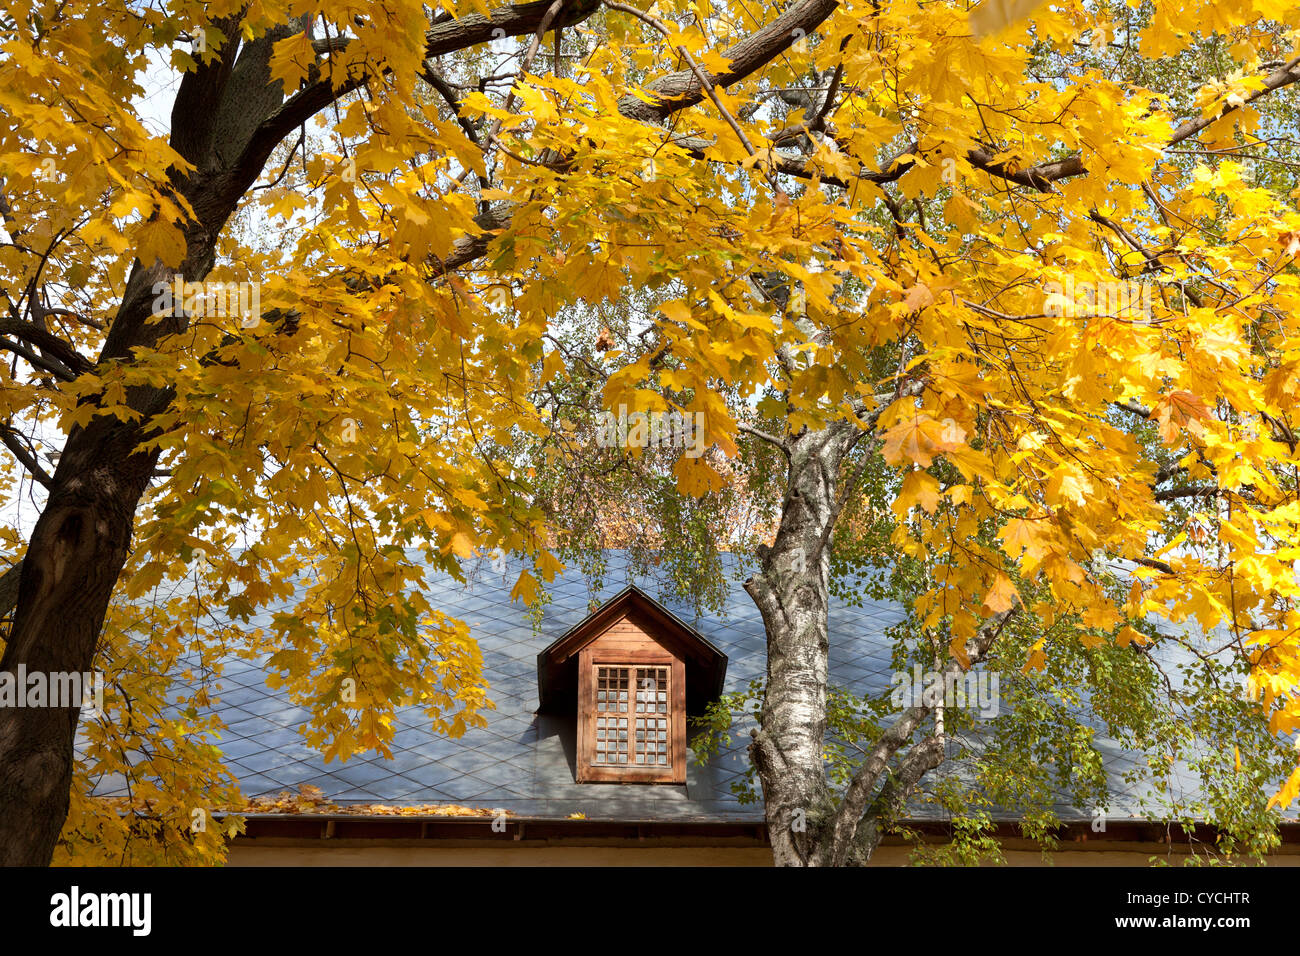 autumn-leaves-at-novodevichy-convent-moscow-CYCHTR.jpg